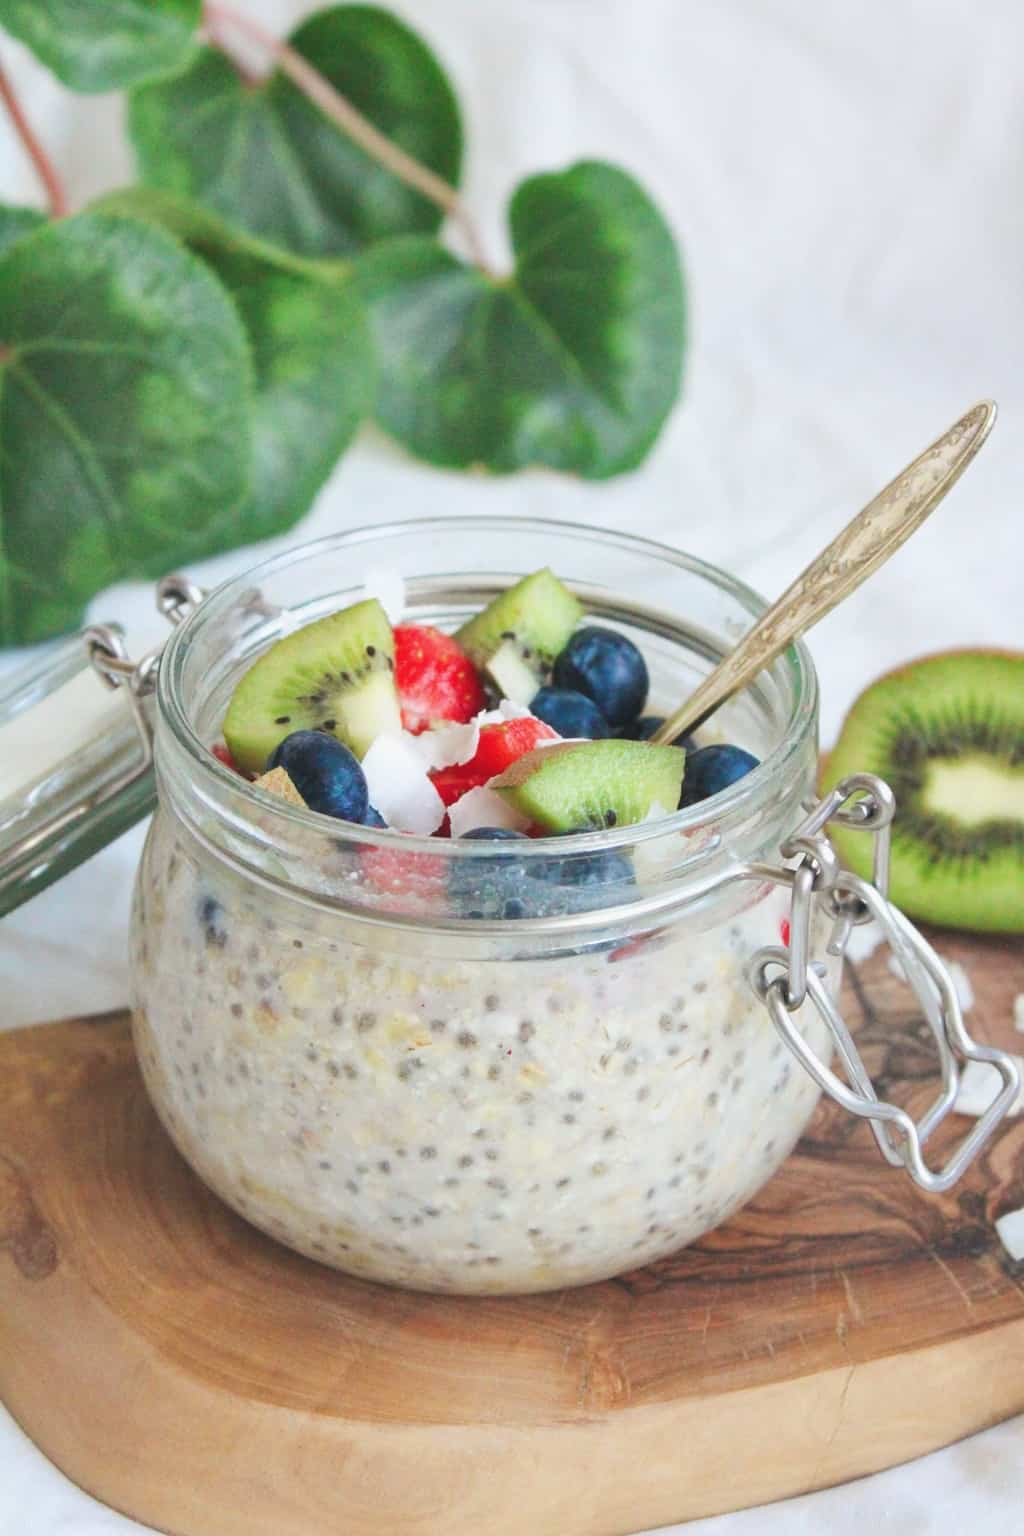 Simple chia overnight porridge recipe